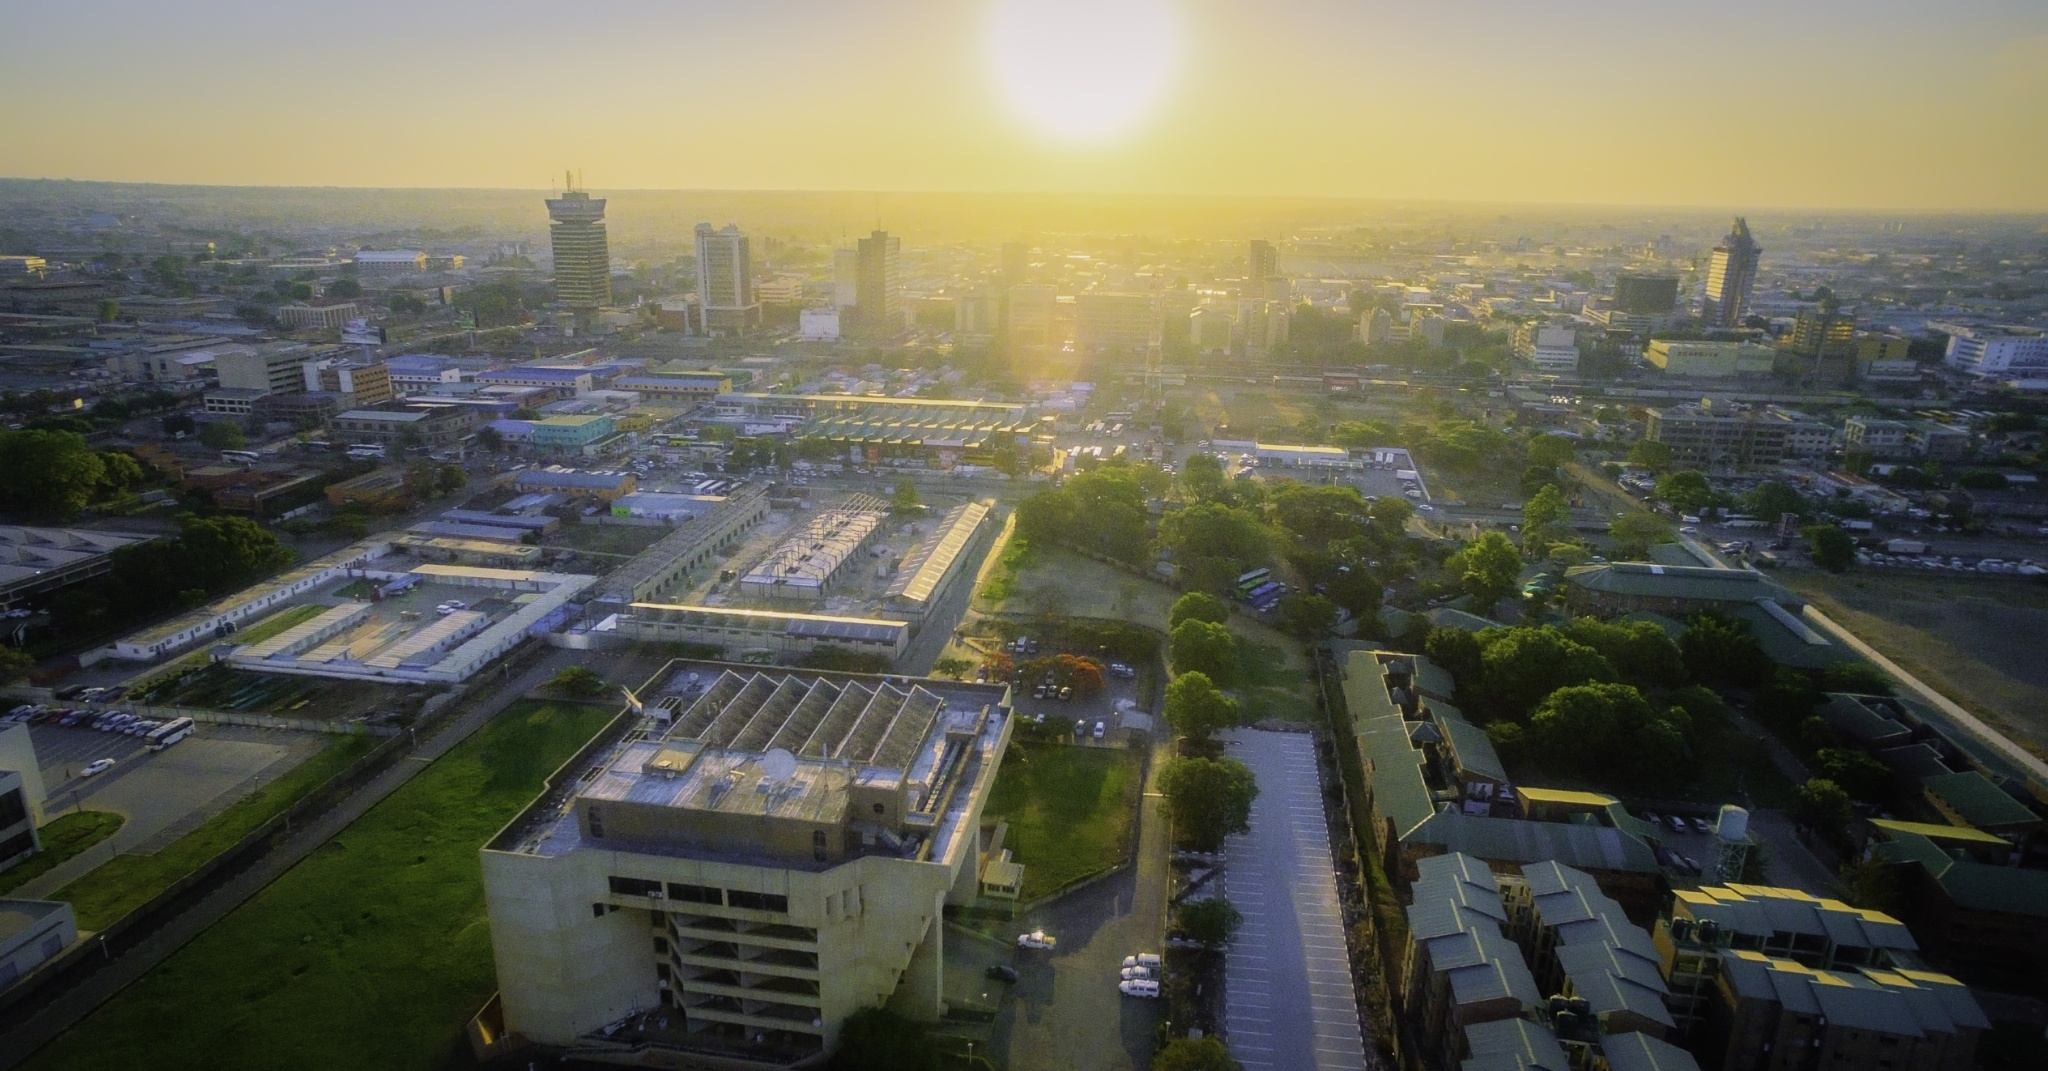 Sun Over Lusaka by Matthews Nshindano